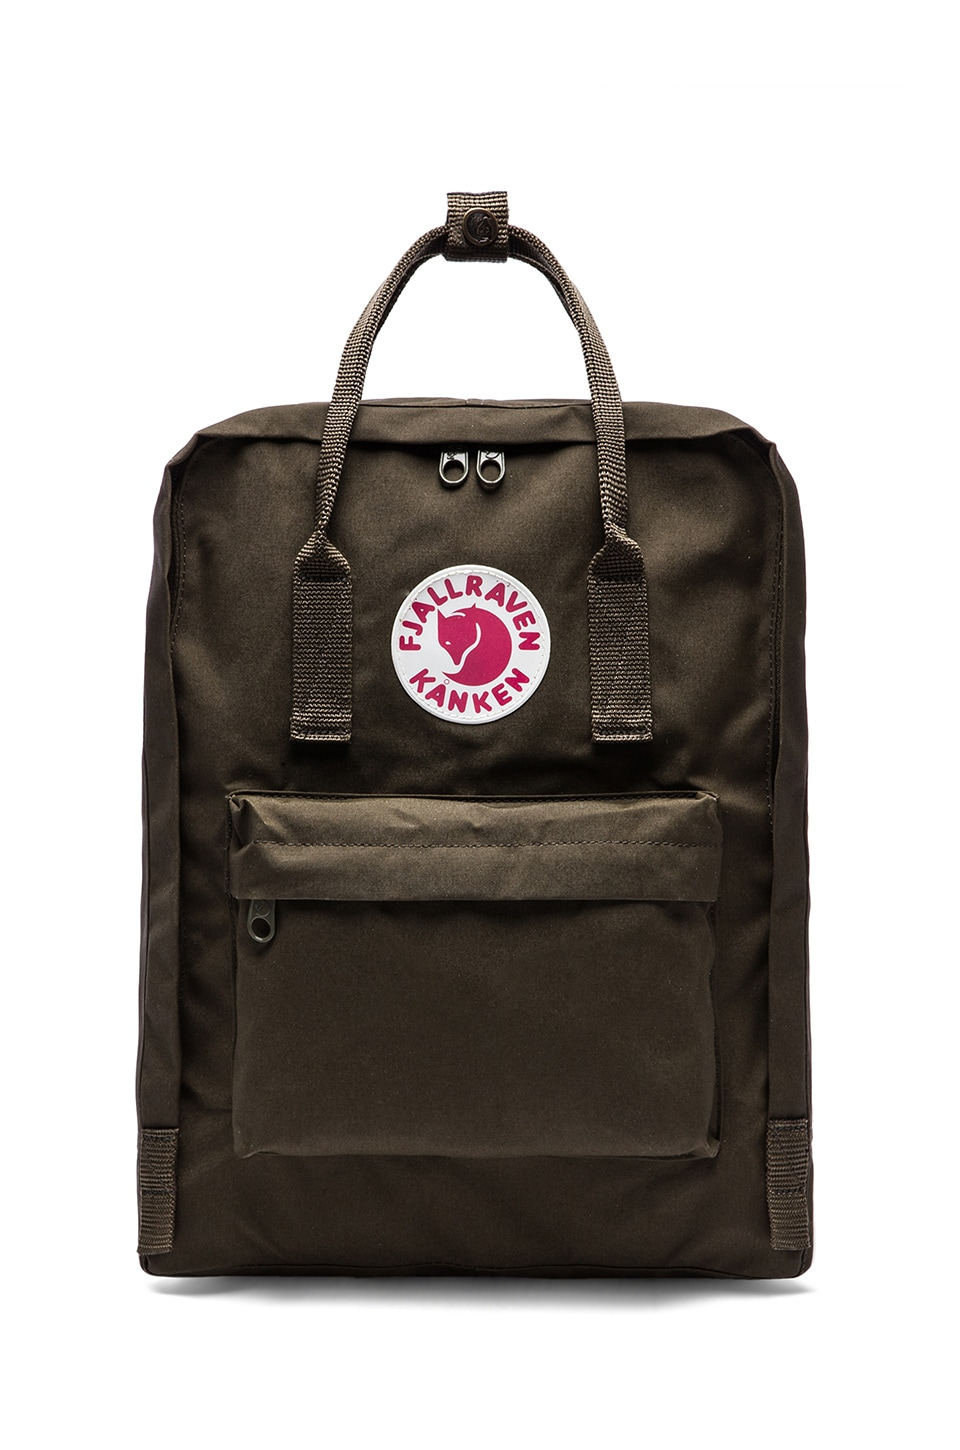 Fjallraven Kanken in Mud